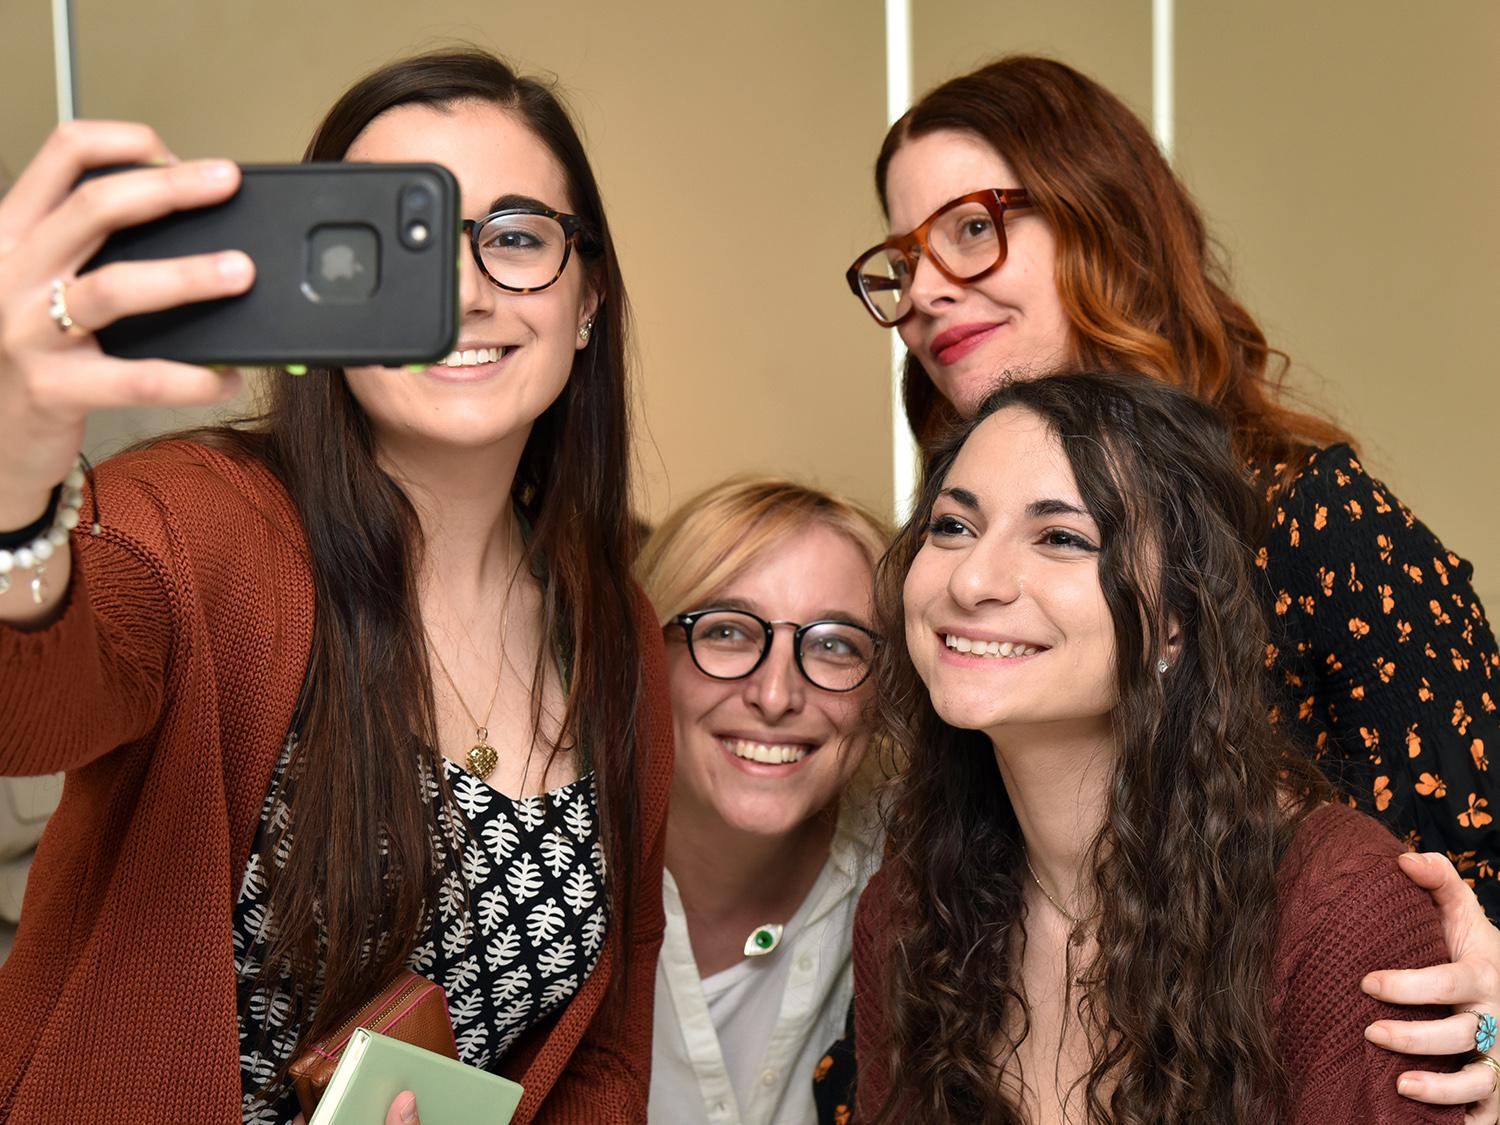 Christene Barberich, global editor-in-chief and co-founder of Refinery29, poses with art students